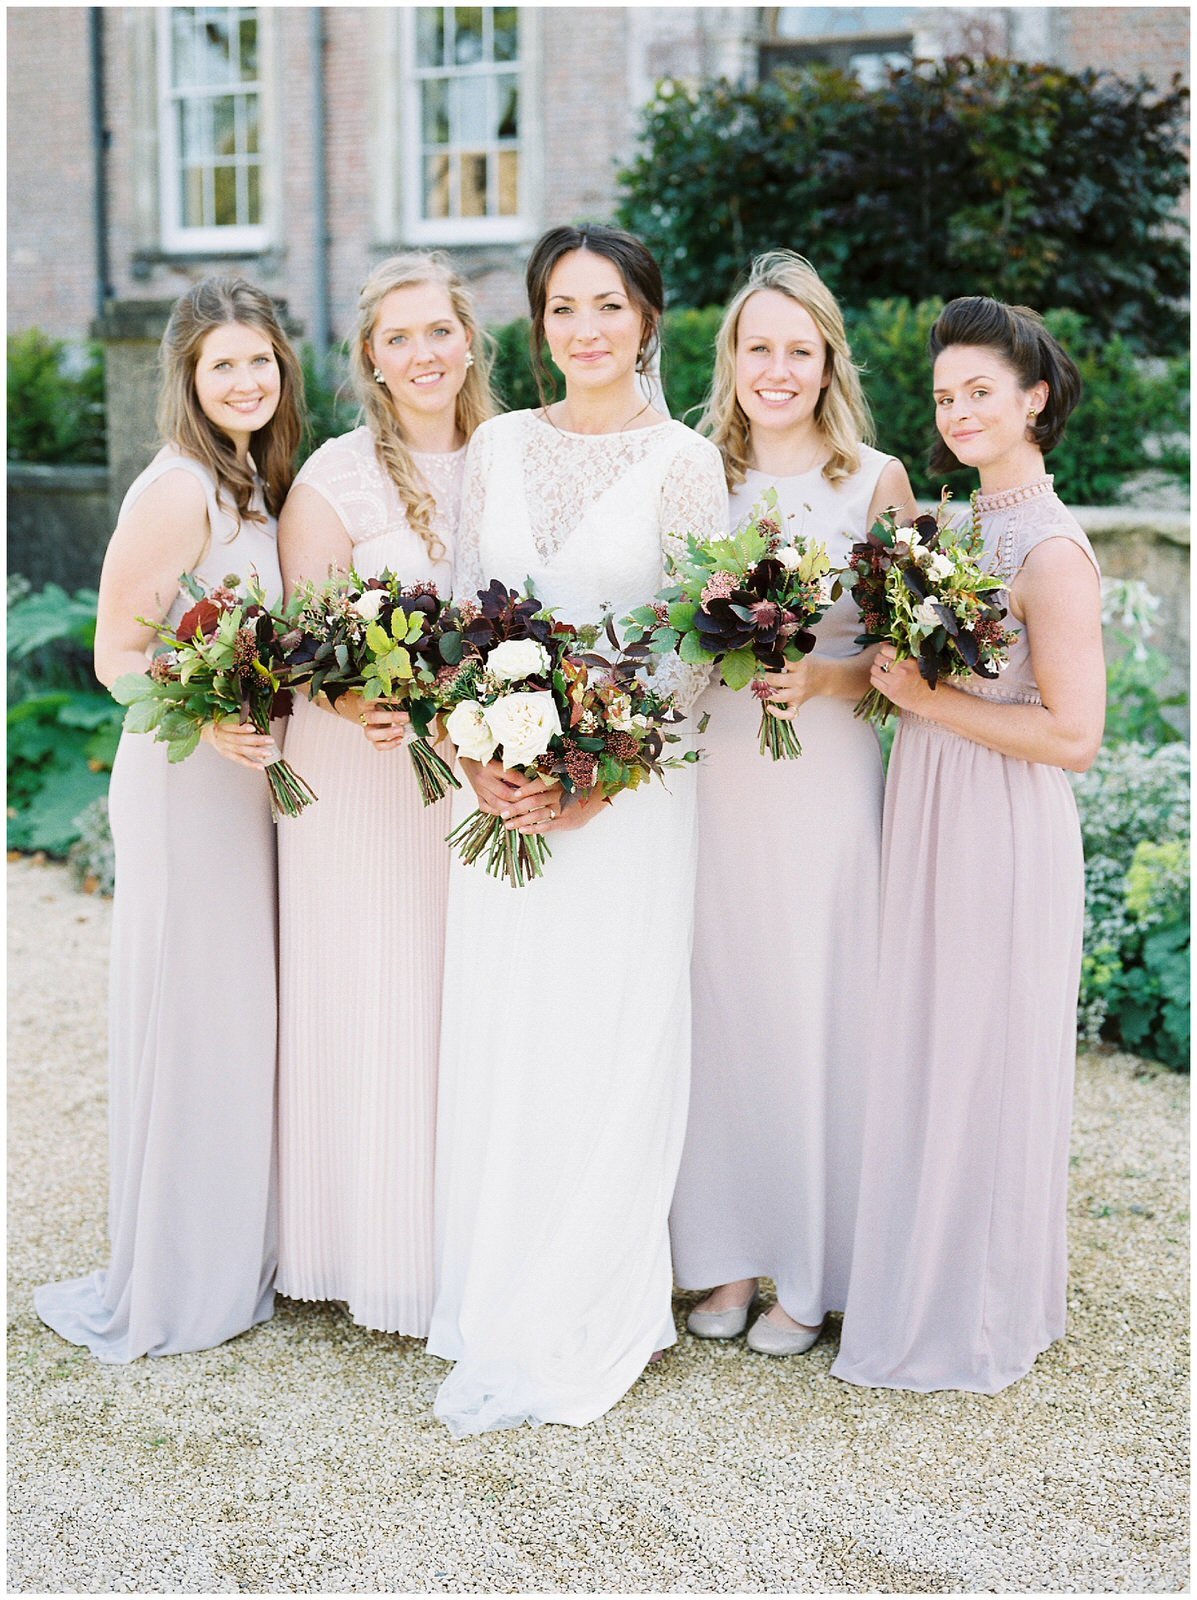 autumn bridesmaids inspiration at dorset wedding venue